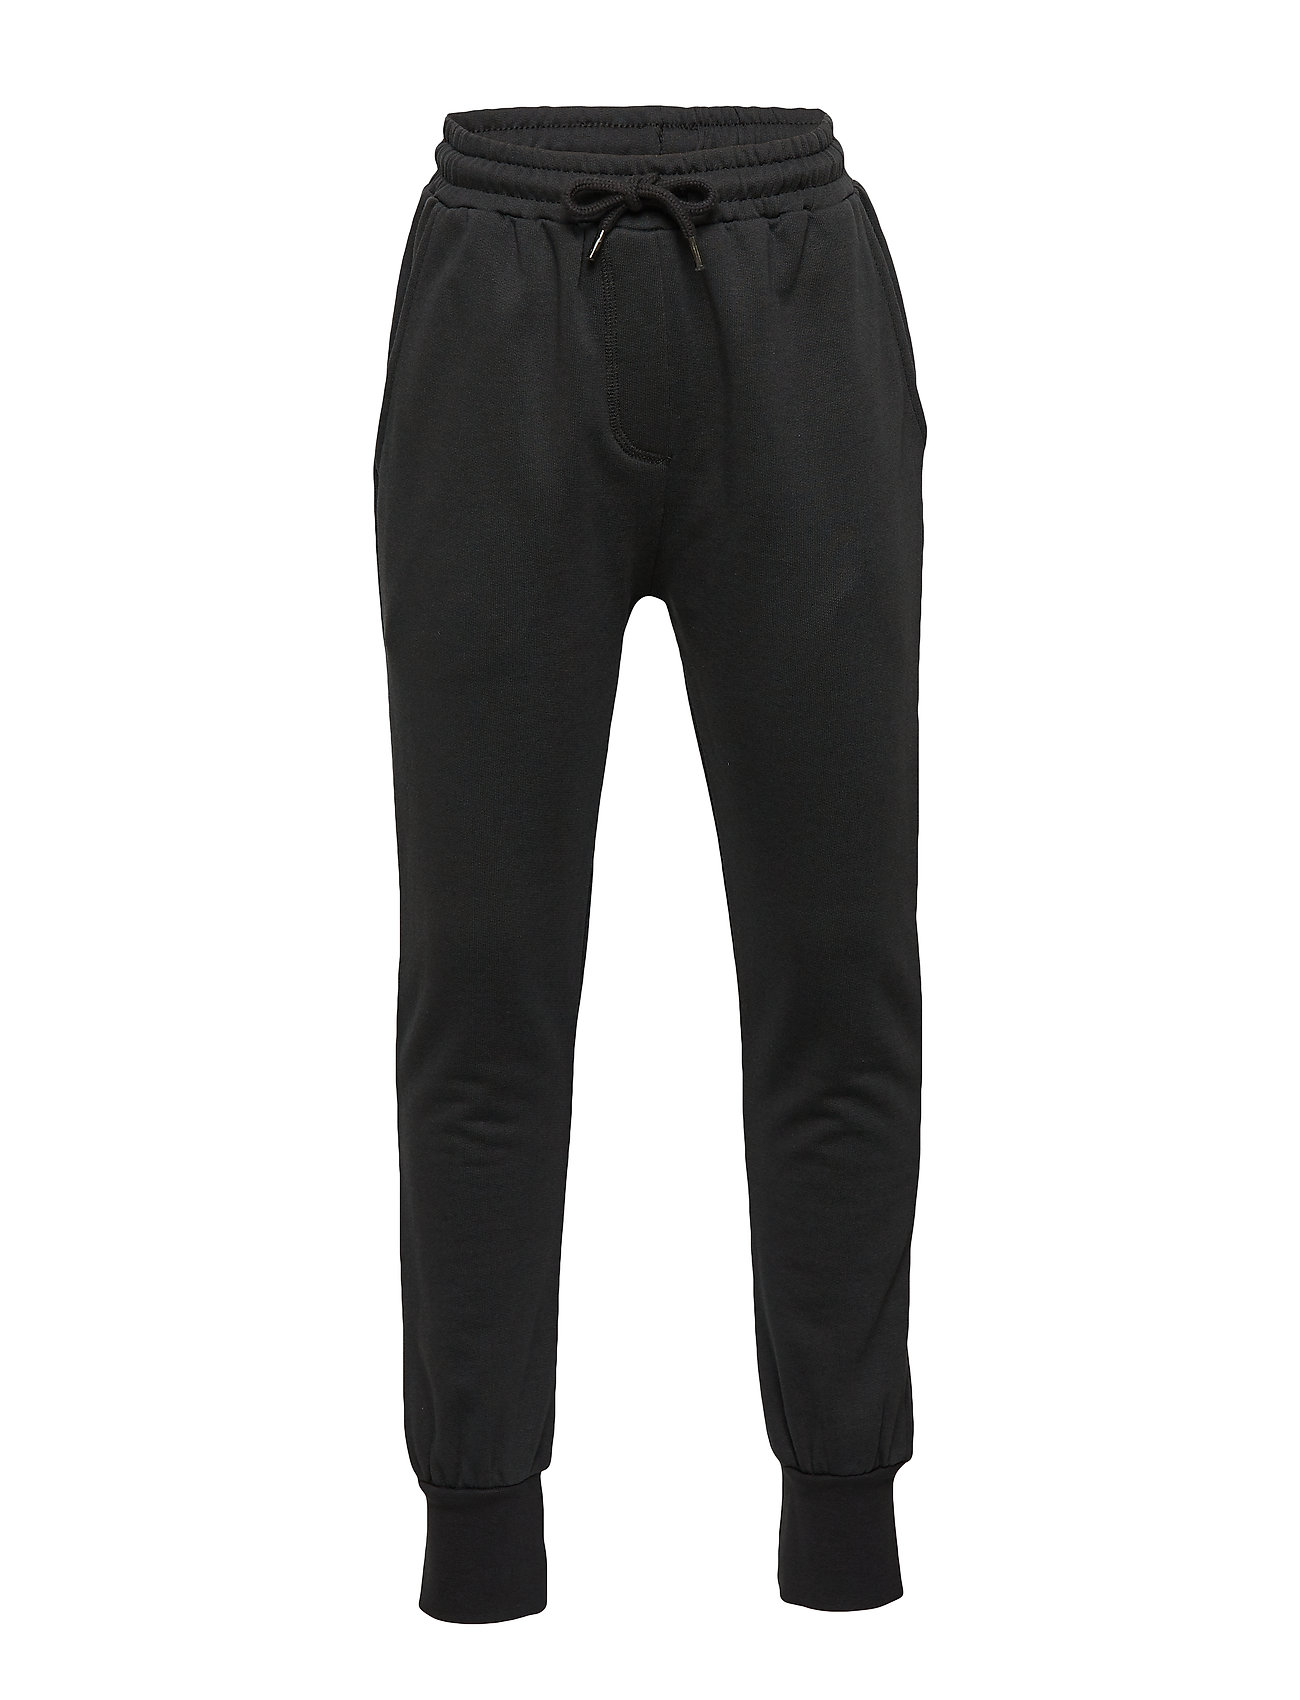 Soft Gallery Becket Pants - PEAT